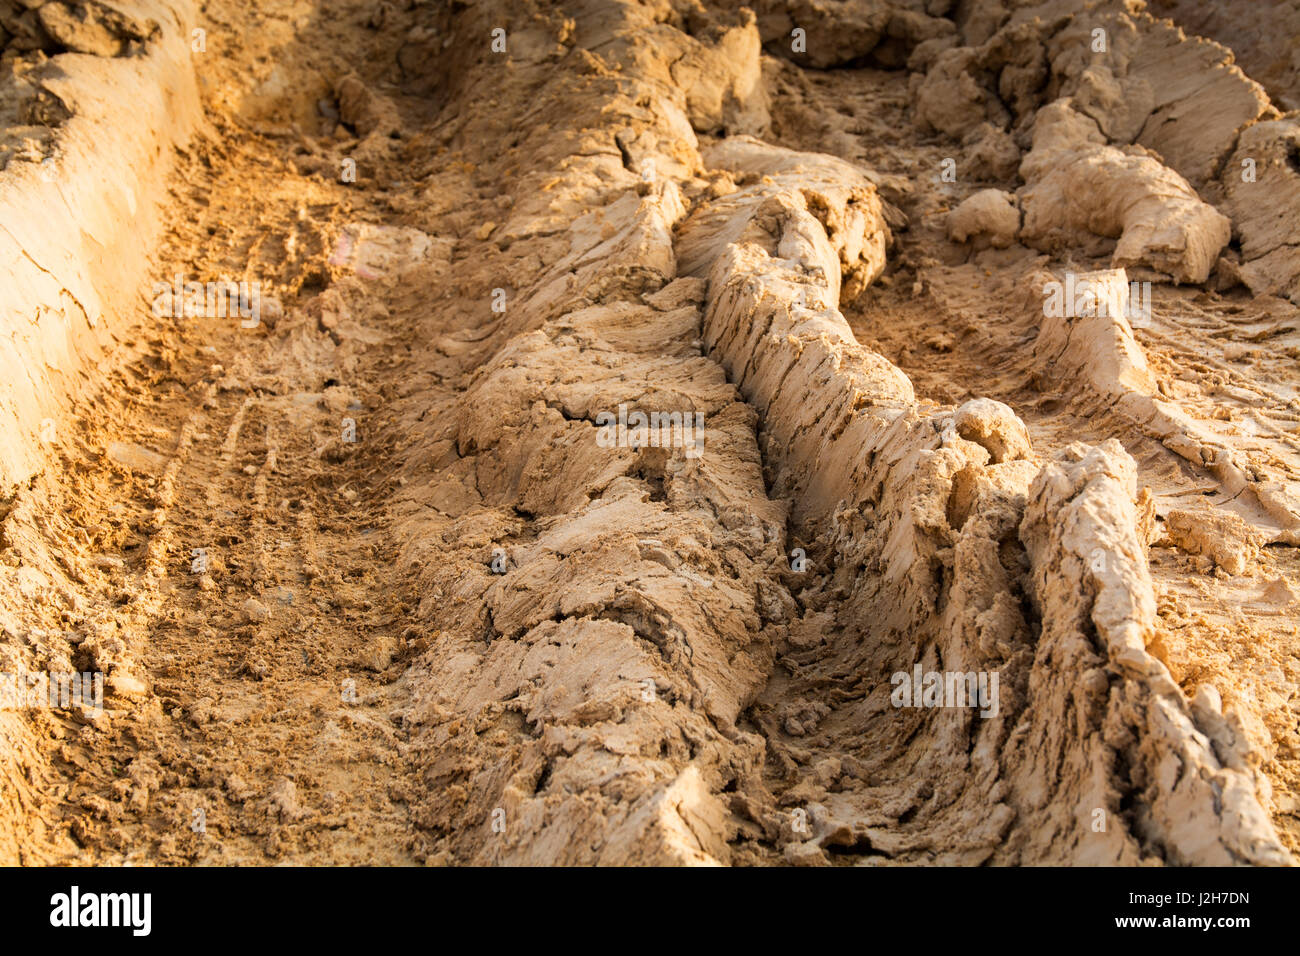 tire marks on dirt in brown tones - Stock Image